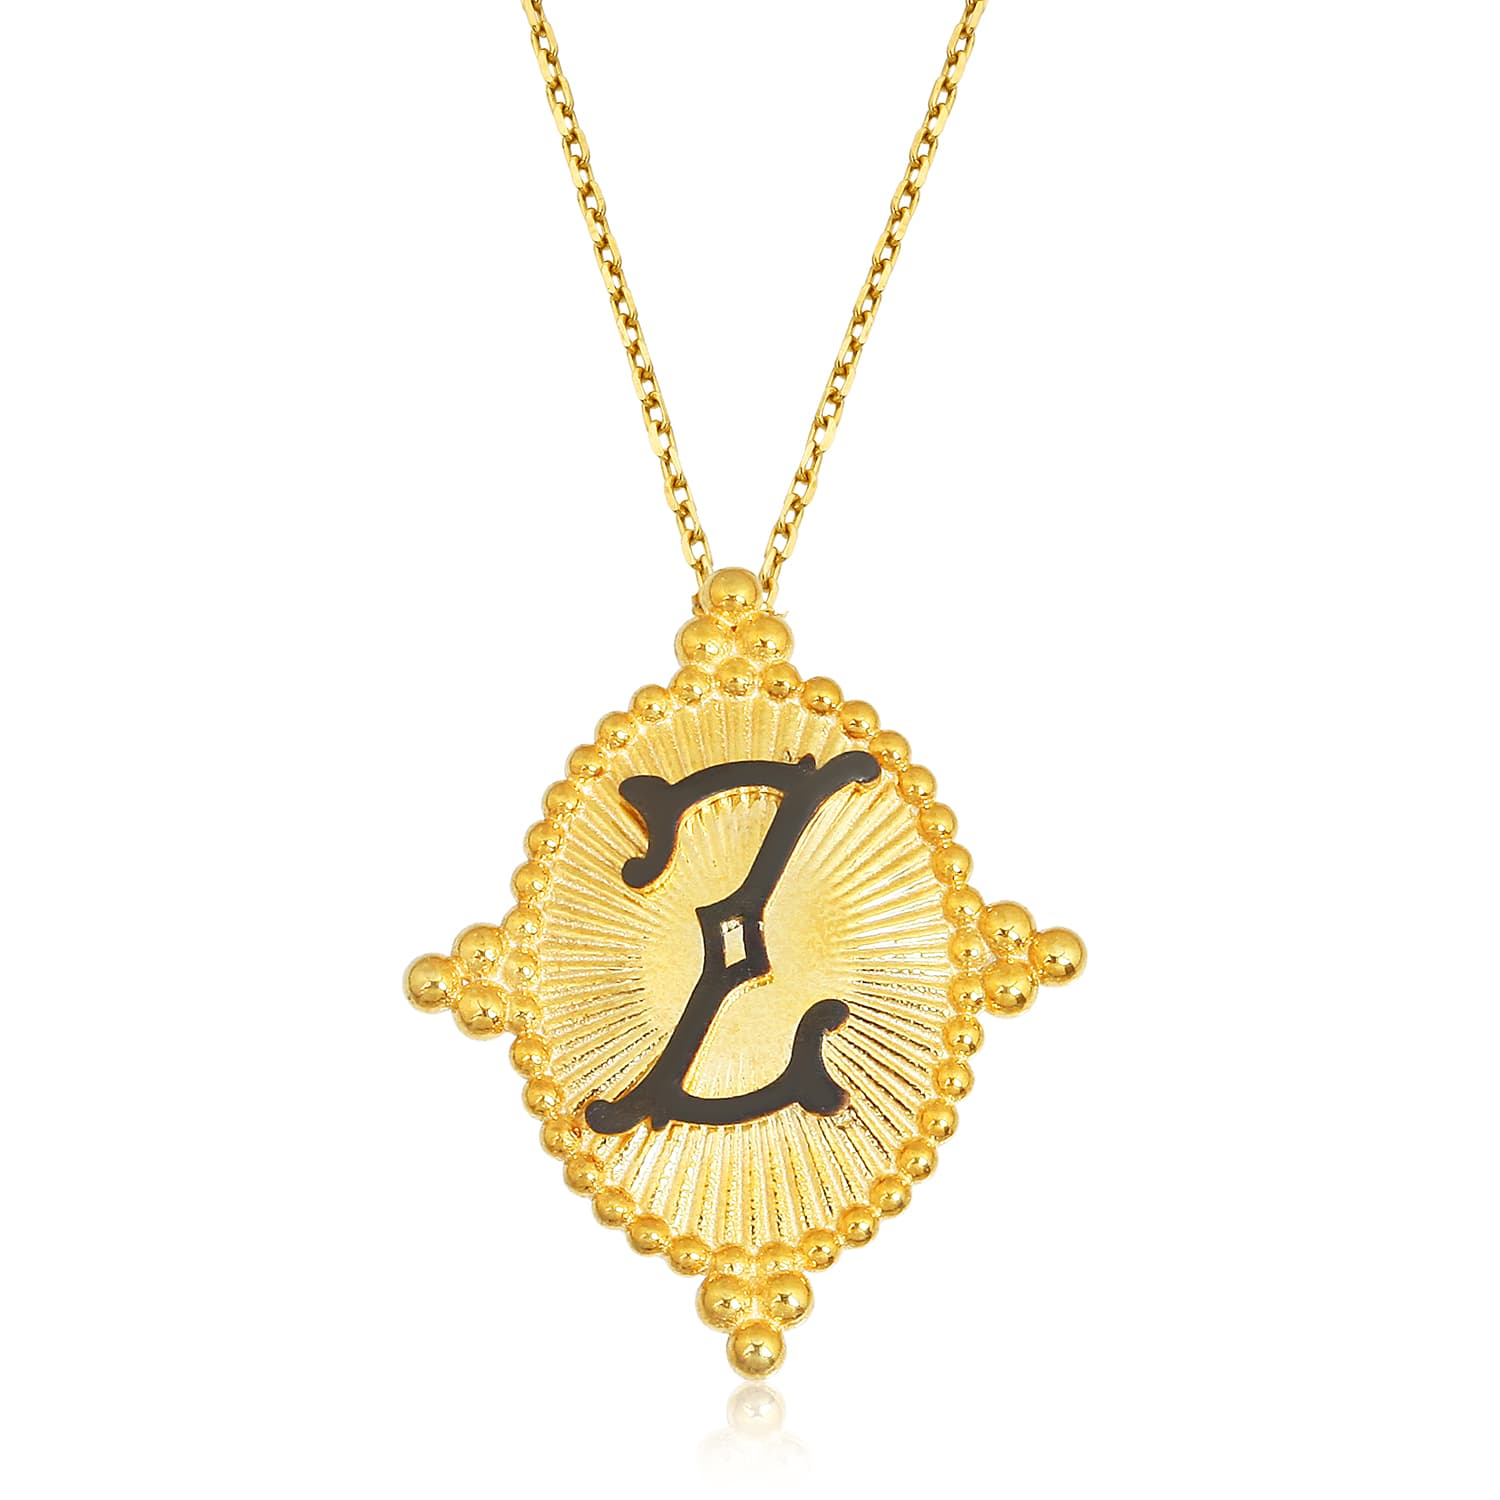 Sterling silver real gold plated letter necklace models